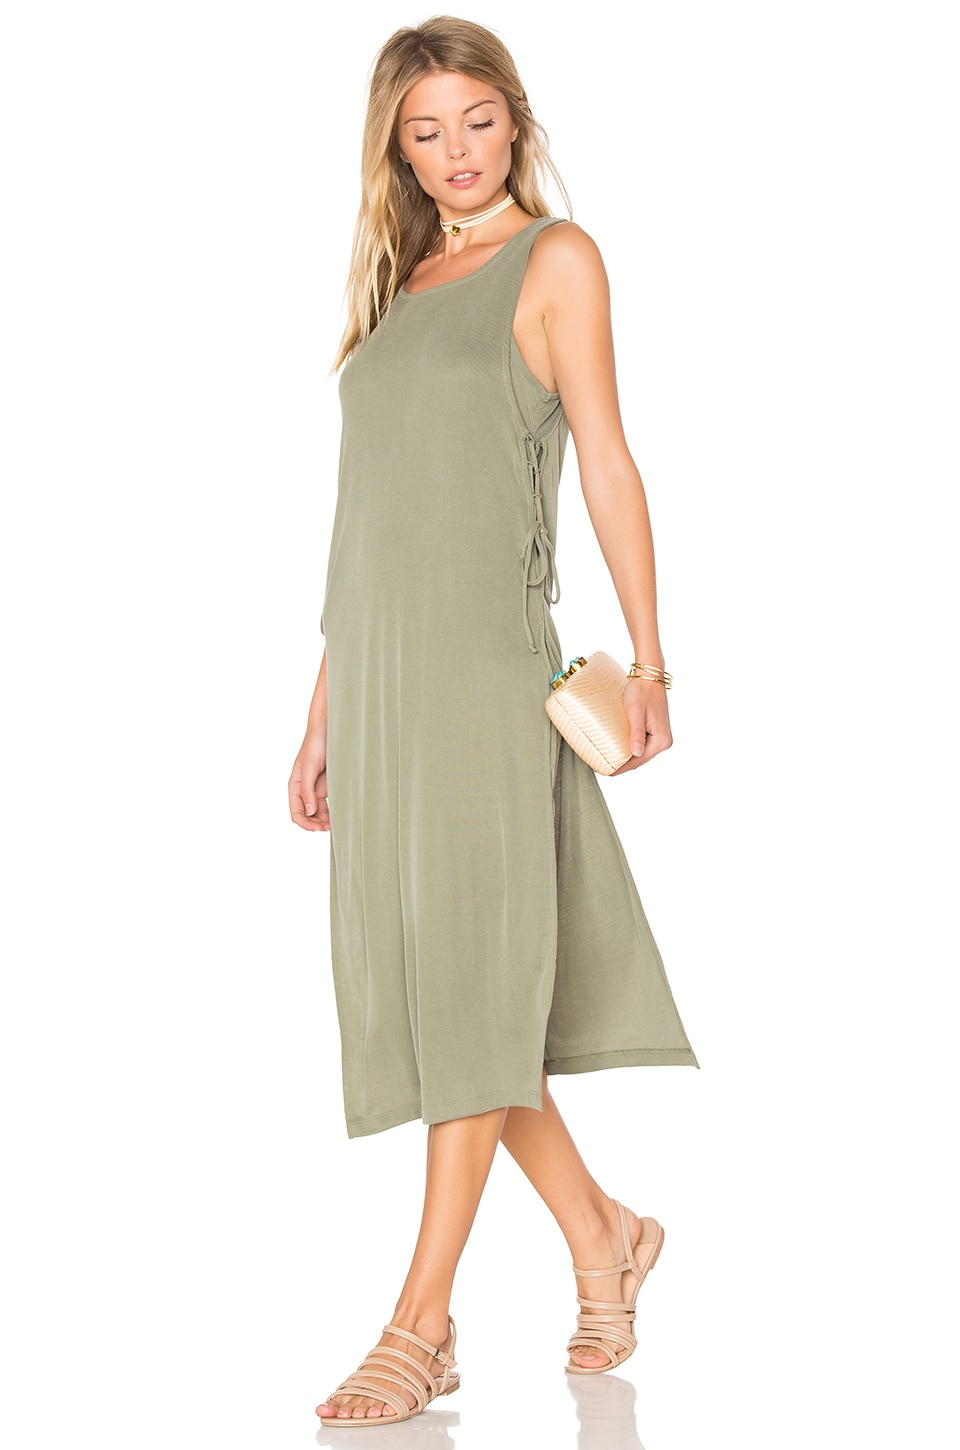 Sandwash Rib Dress by Splendid